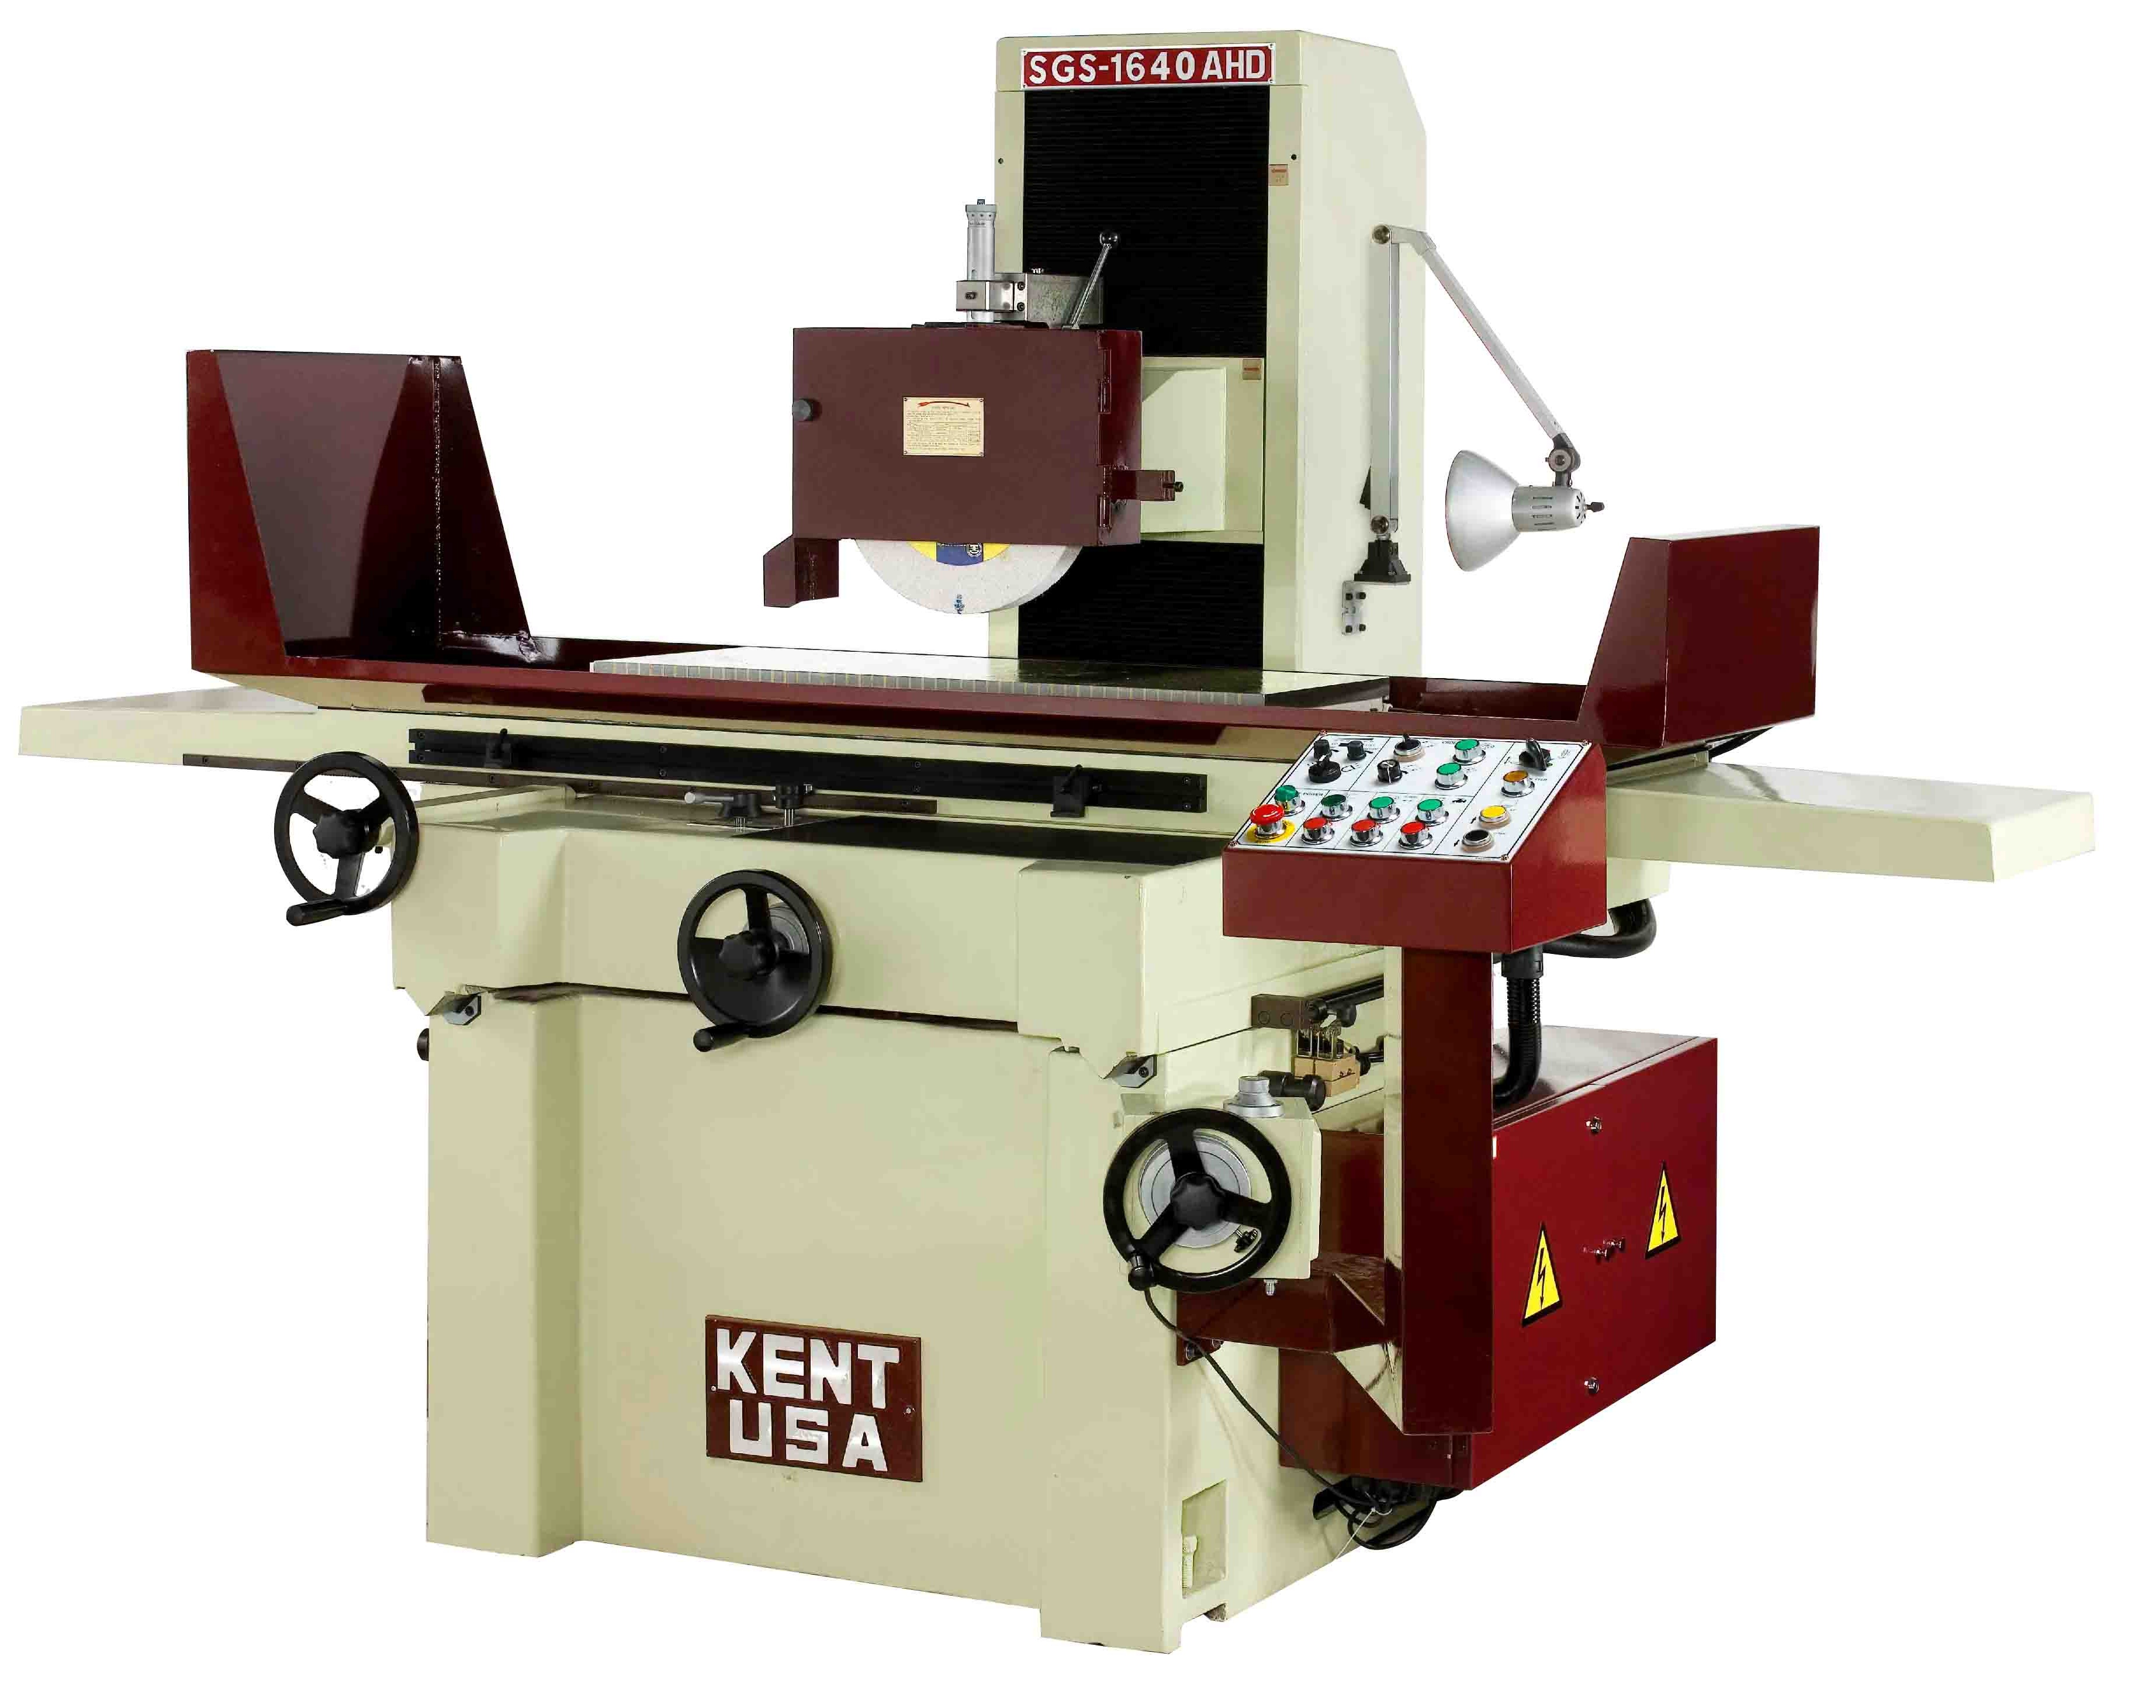 """16"""" x 40"""" KENT USA SGS-1640 AHD AUTOMATIC SURFACE GRINDER - NEW"""